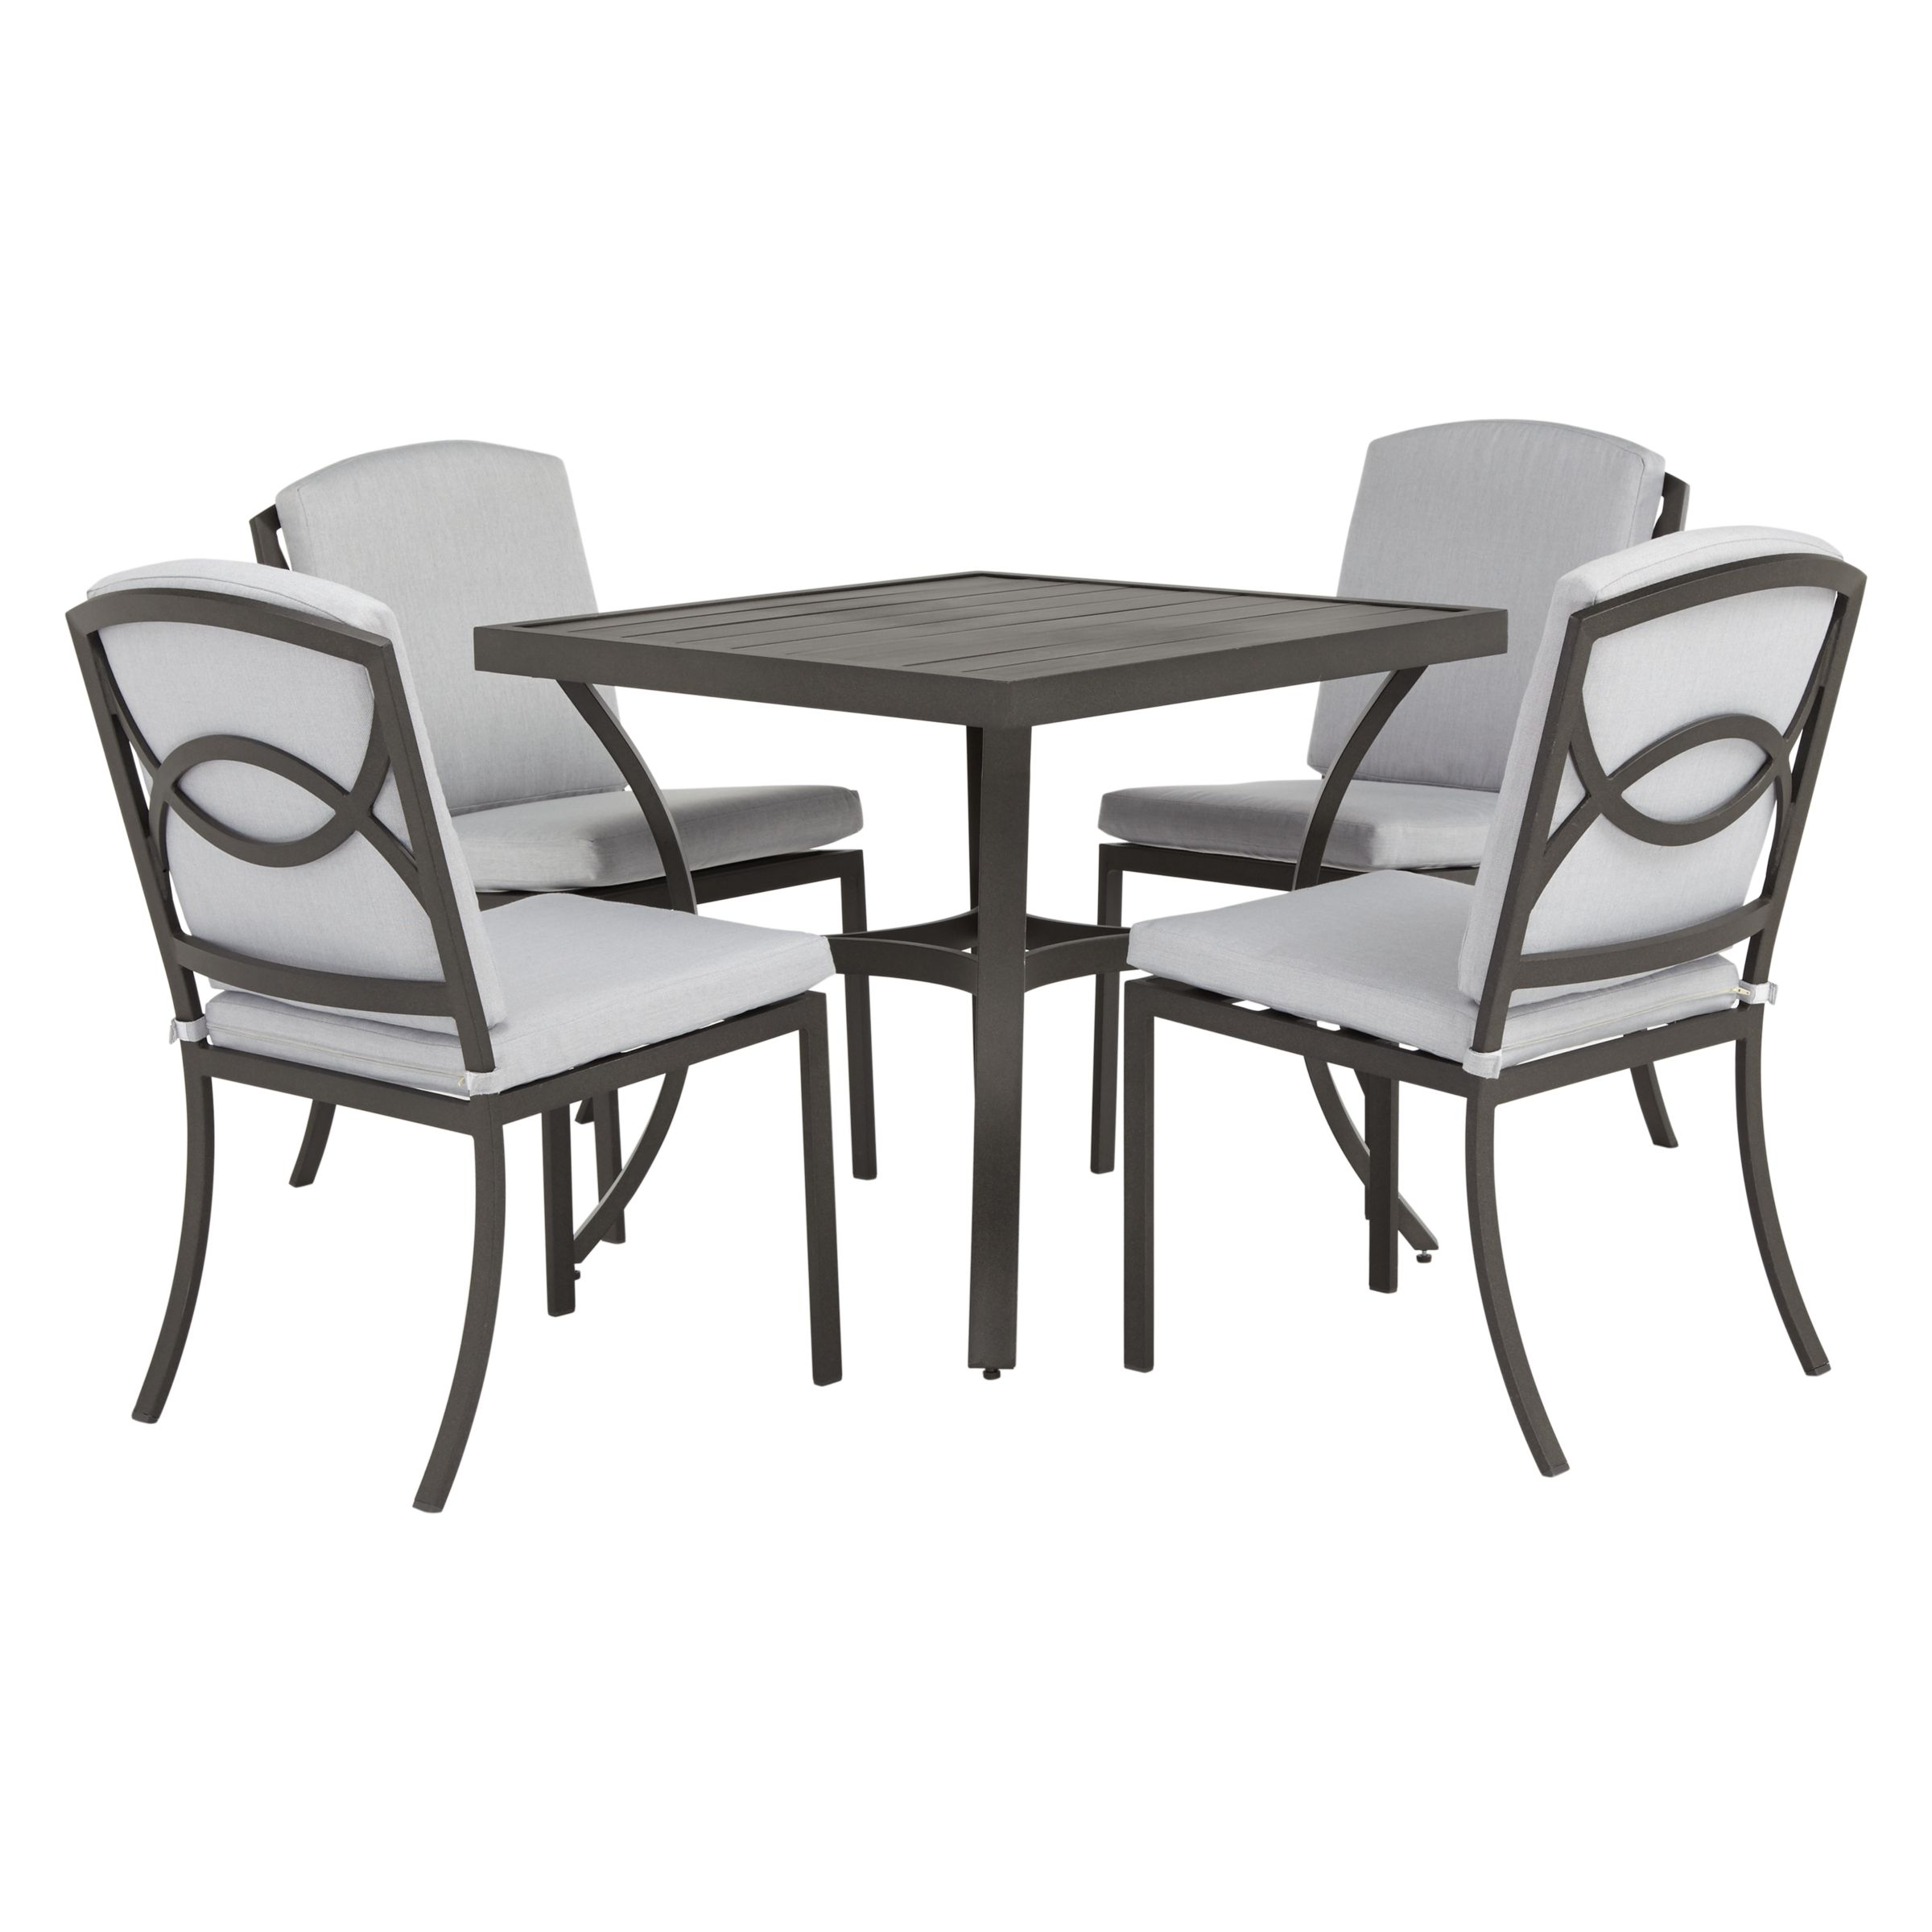 John Lewis & Partners Marlow Aluminium 4 Seater Garden Dining Table, Black/Grey